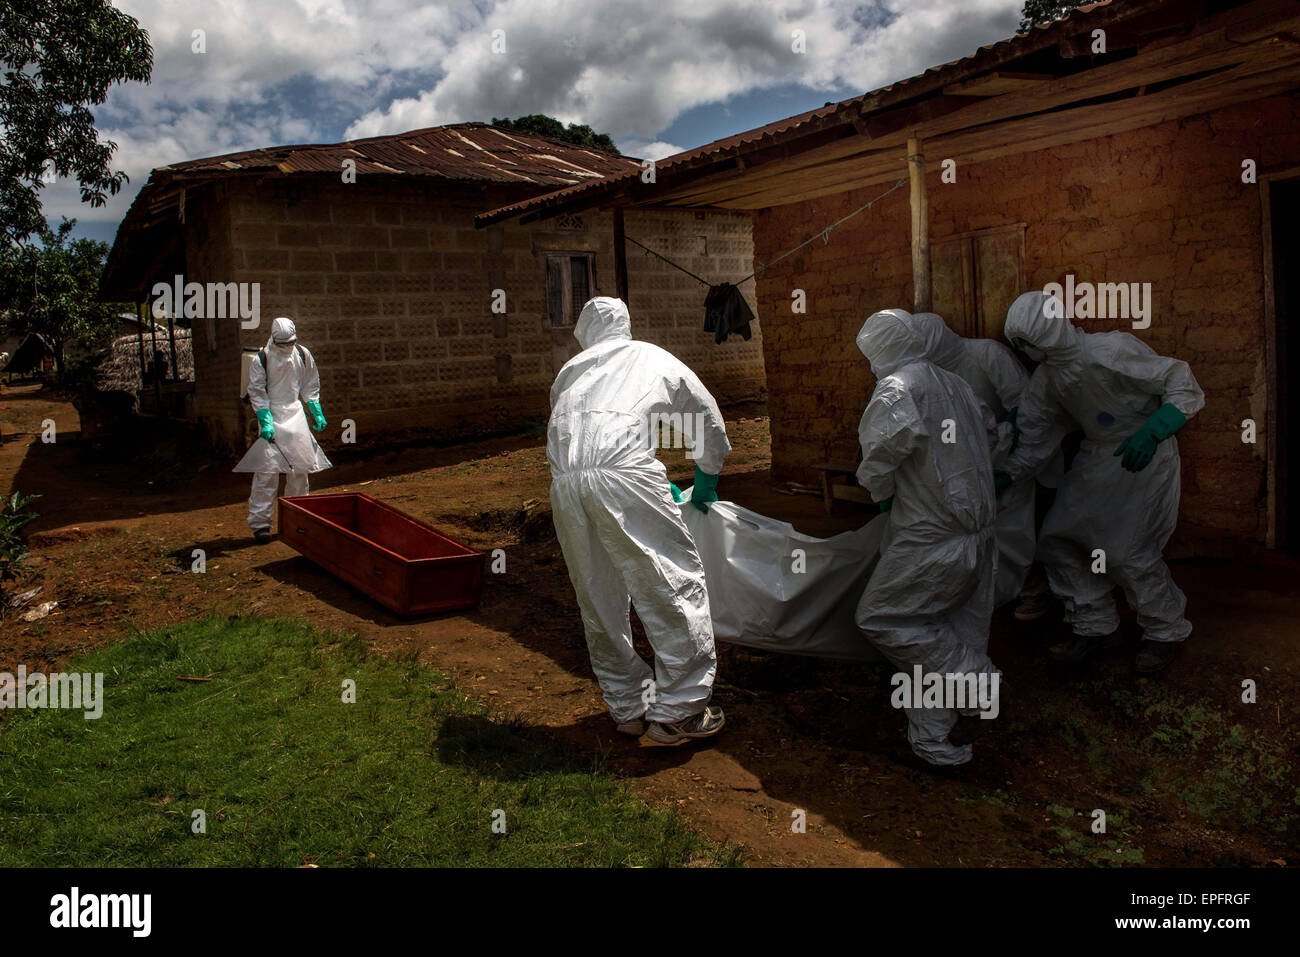 Members of a burial team carry out the body of a suspected Ebola victim in Komende Luyama village. Eastern Sierra - Stock Image